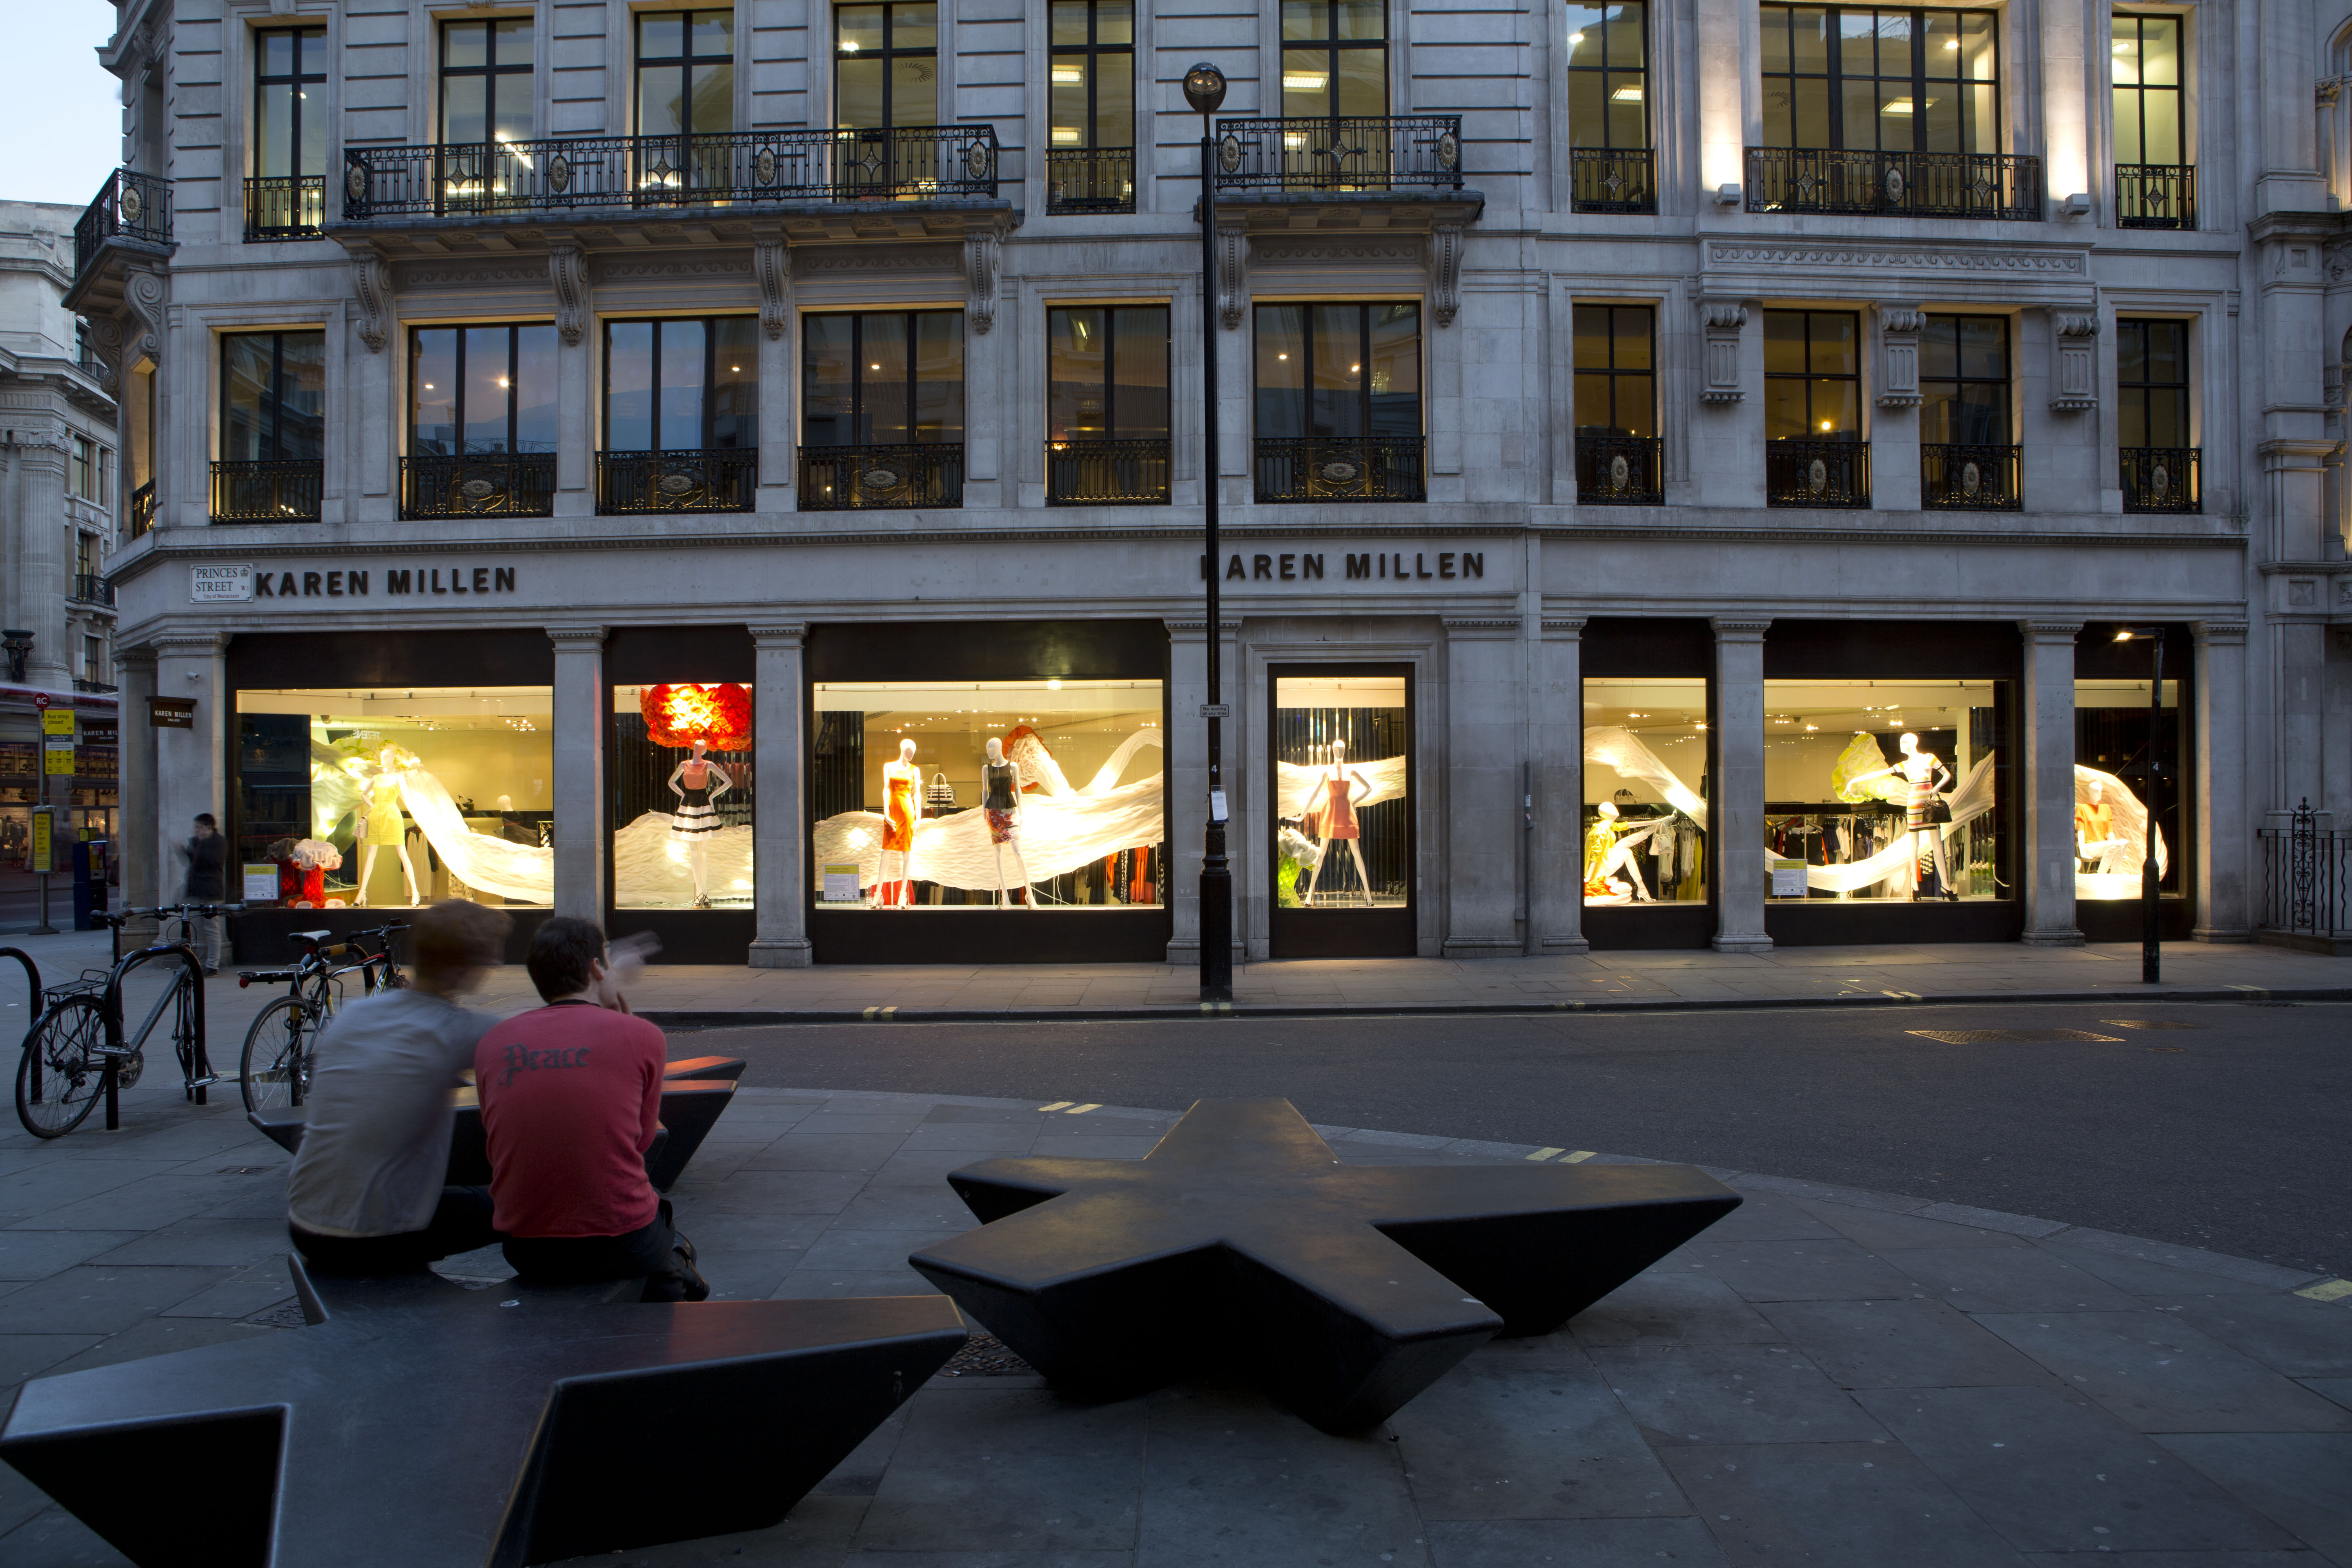 The regent street windows project 2012 - Arthur Mamou Mani Sitting With Jack Munro Discussing The Karen Millen Project Photo By Agnesesanvito